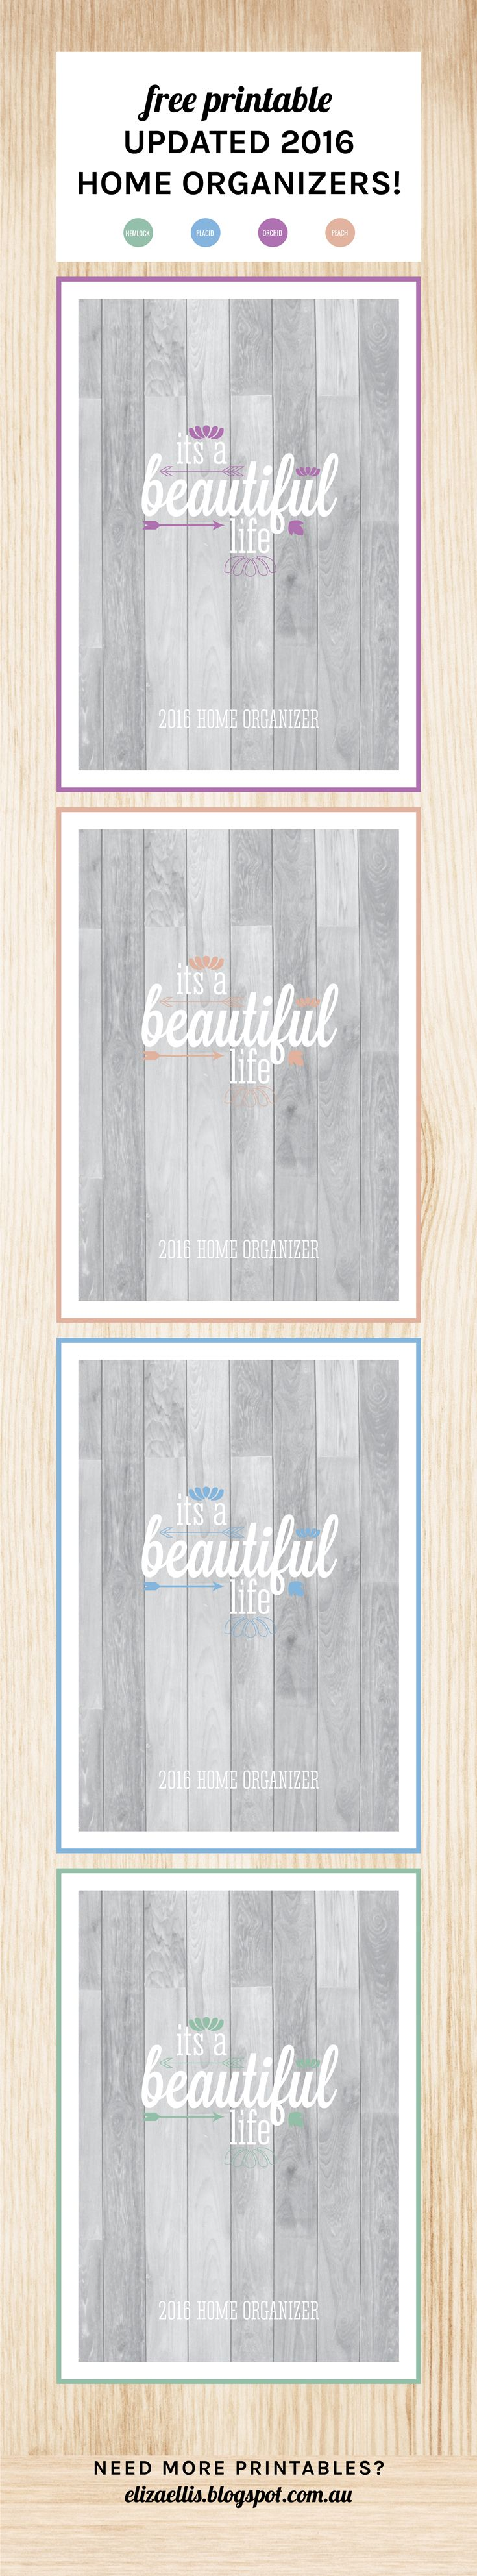 1000+ images about PRINTABLES on Pinterest | Weekly planner, Mini ...